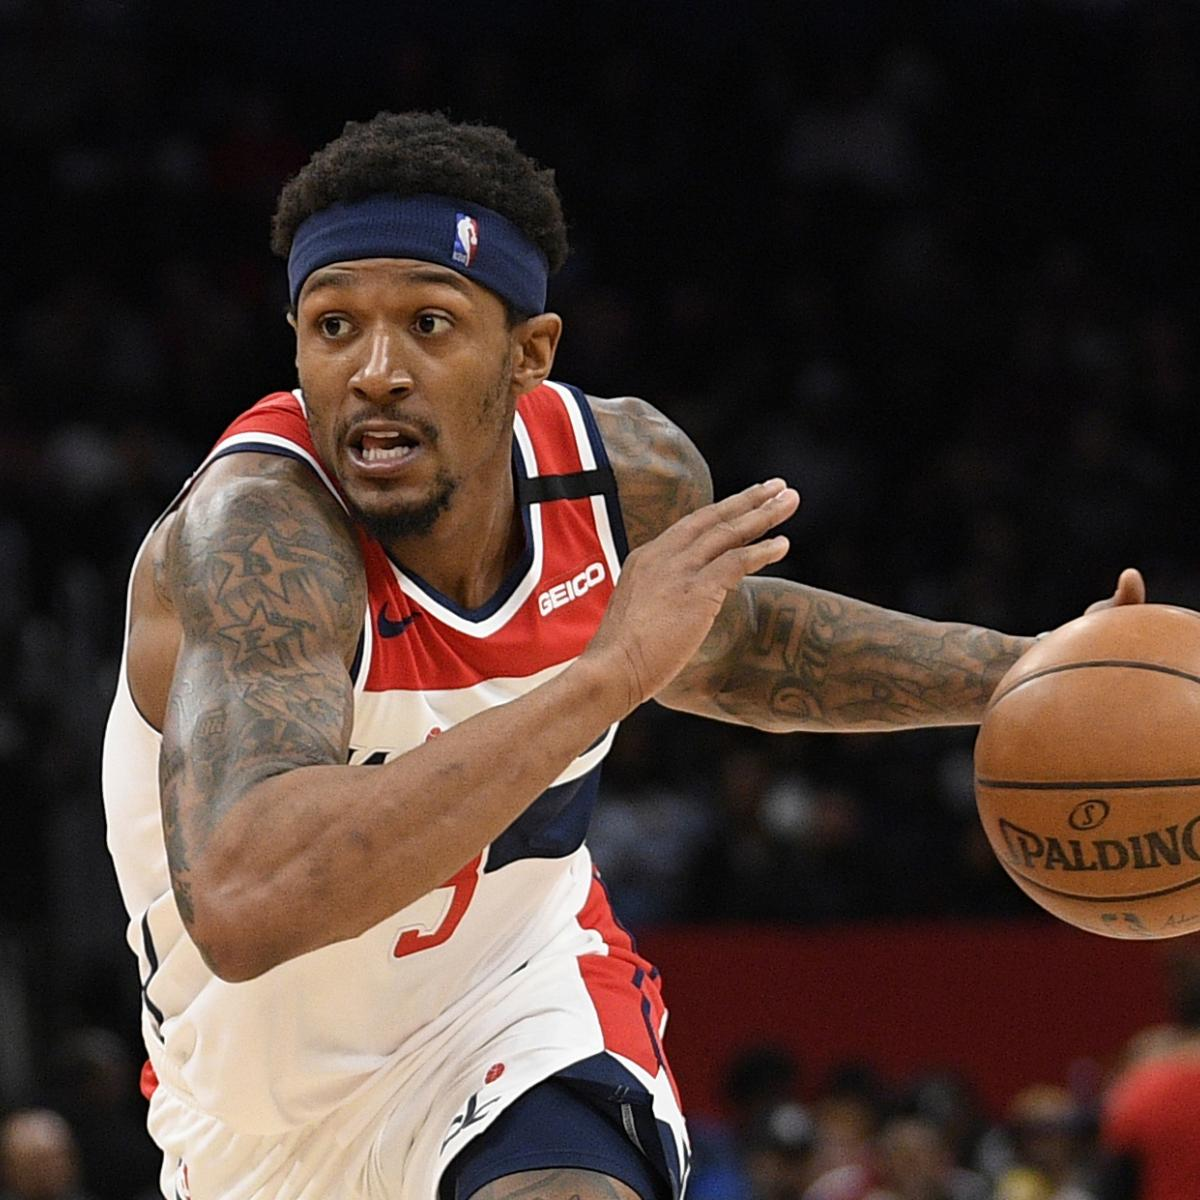 Bradley Beal Trade Rumors: Wizards Don't Want to Move Star Despite Buzz